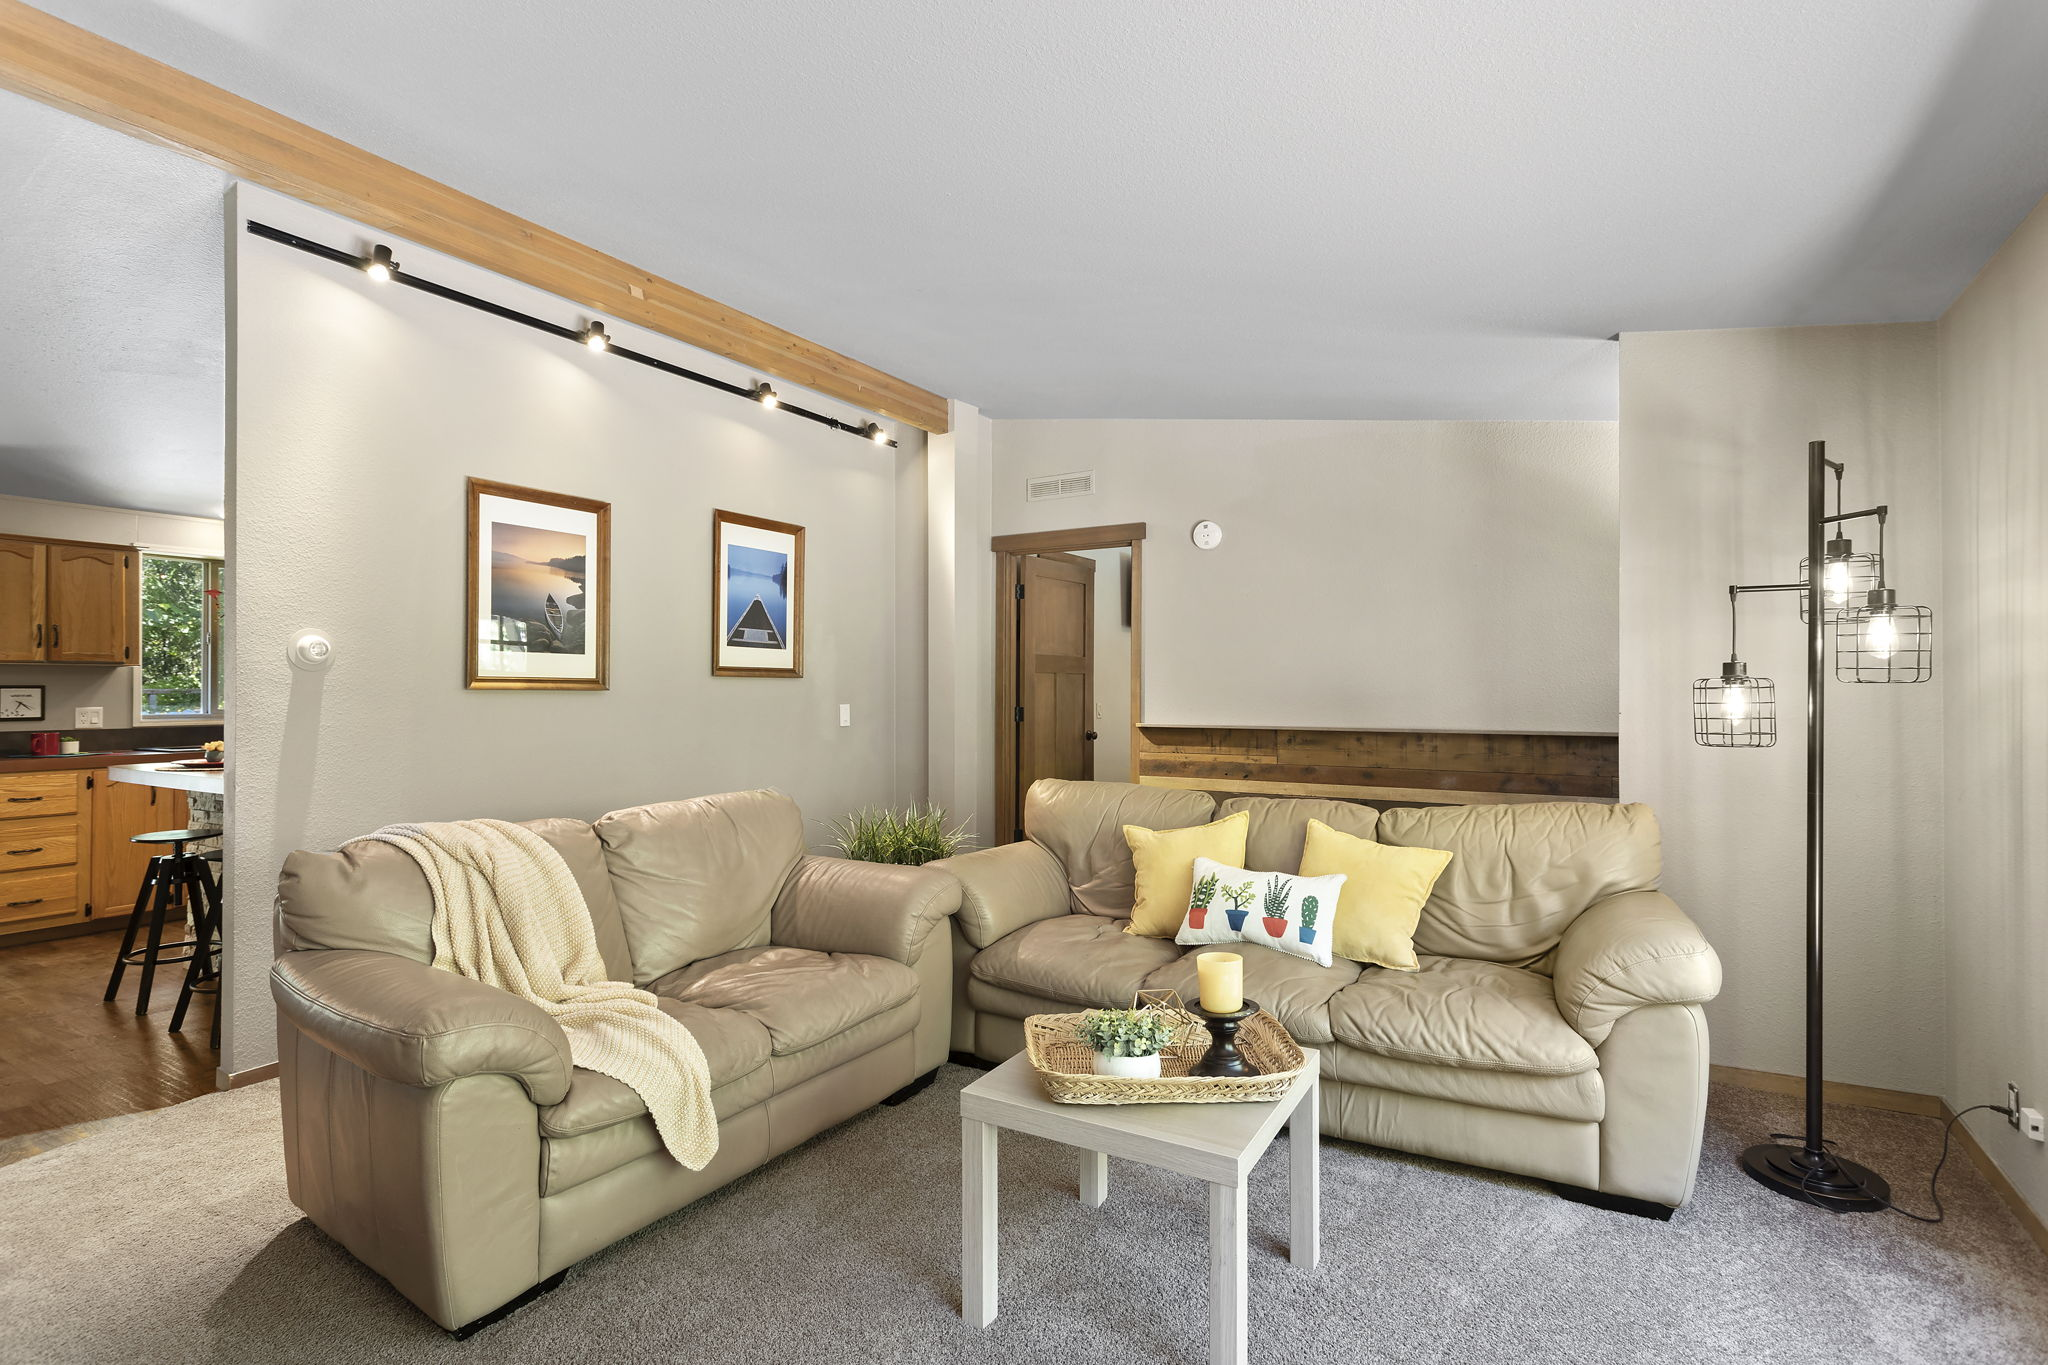 Living room has lots of space and beautiful shiplap wall at second entry to the home